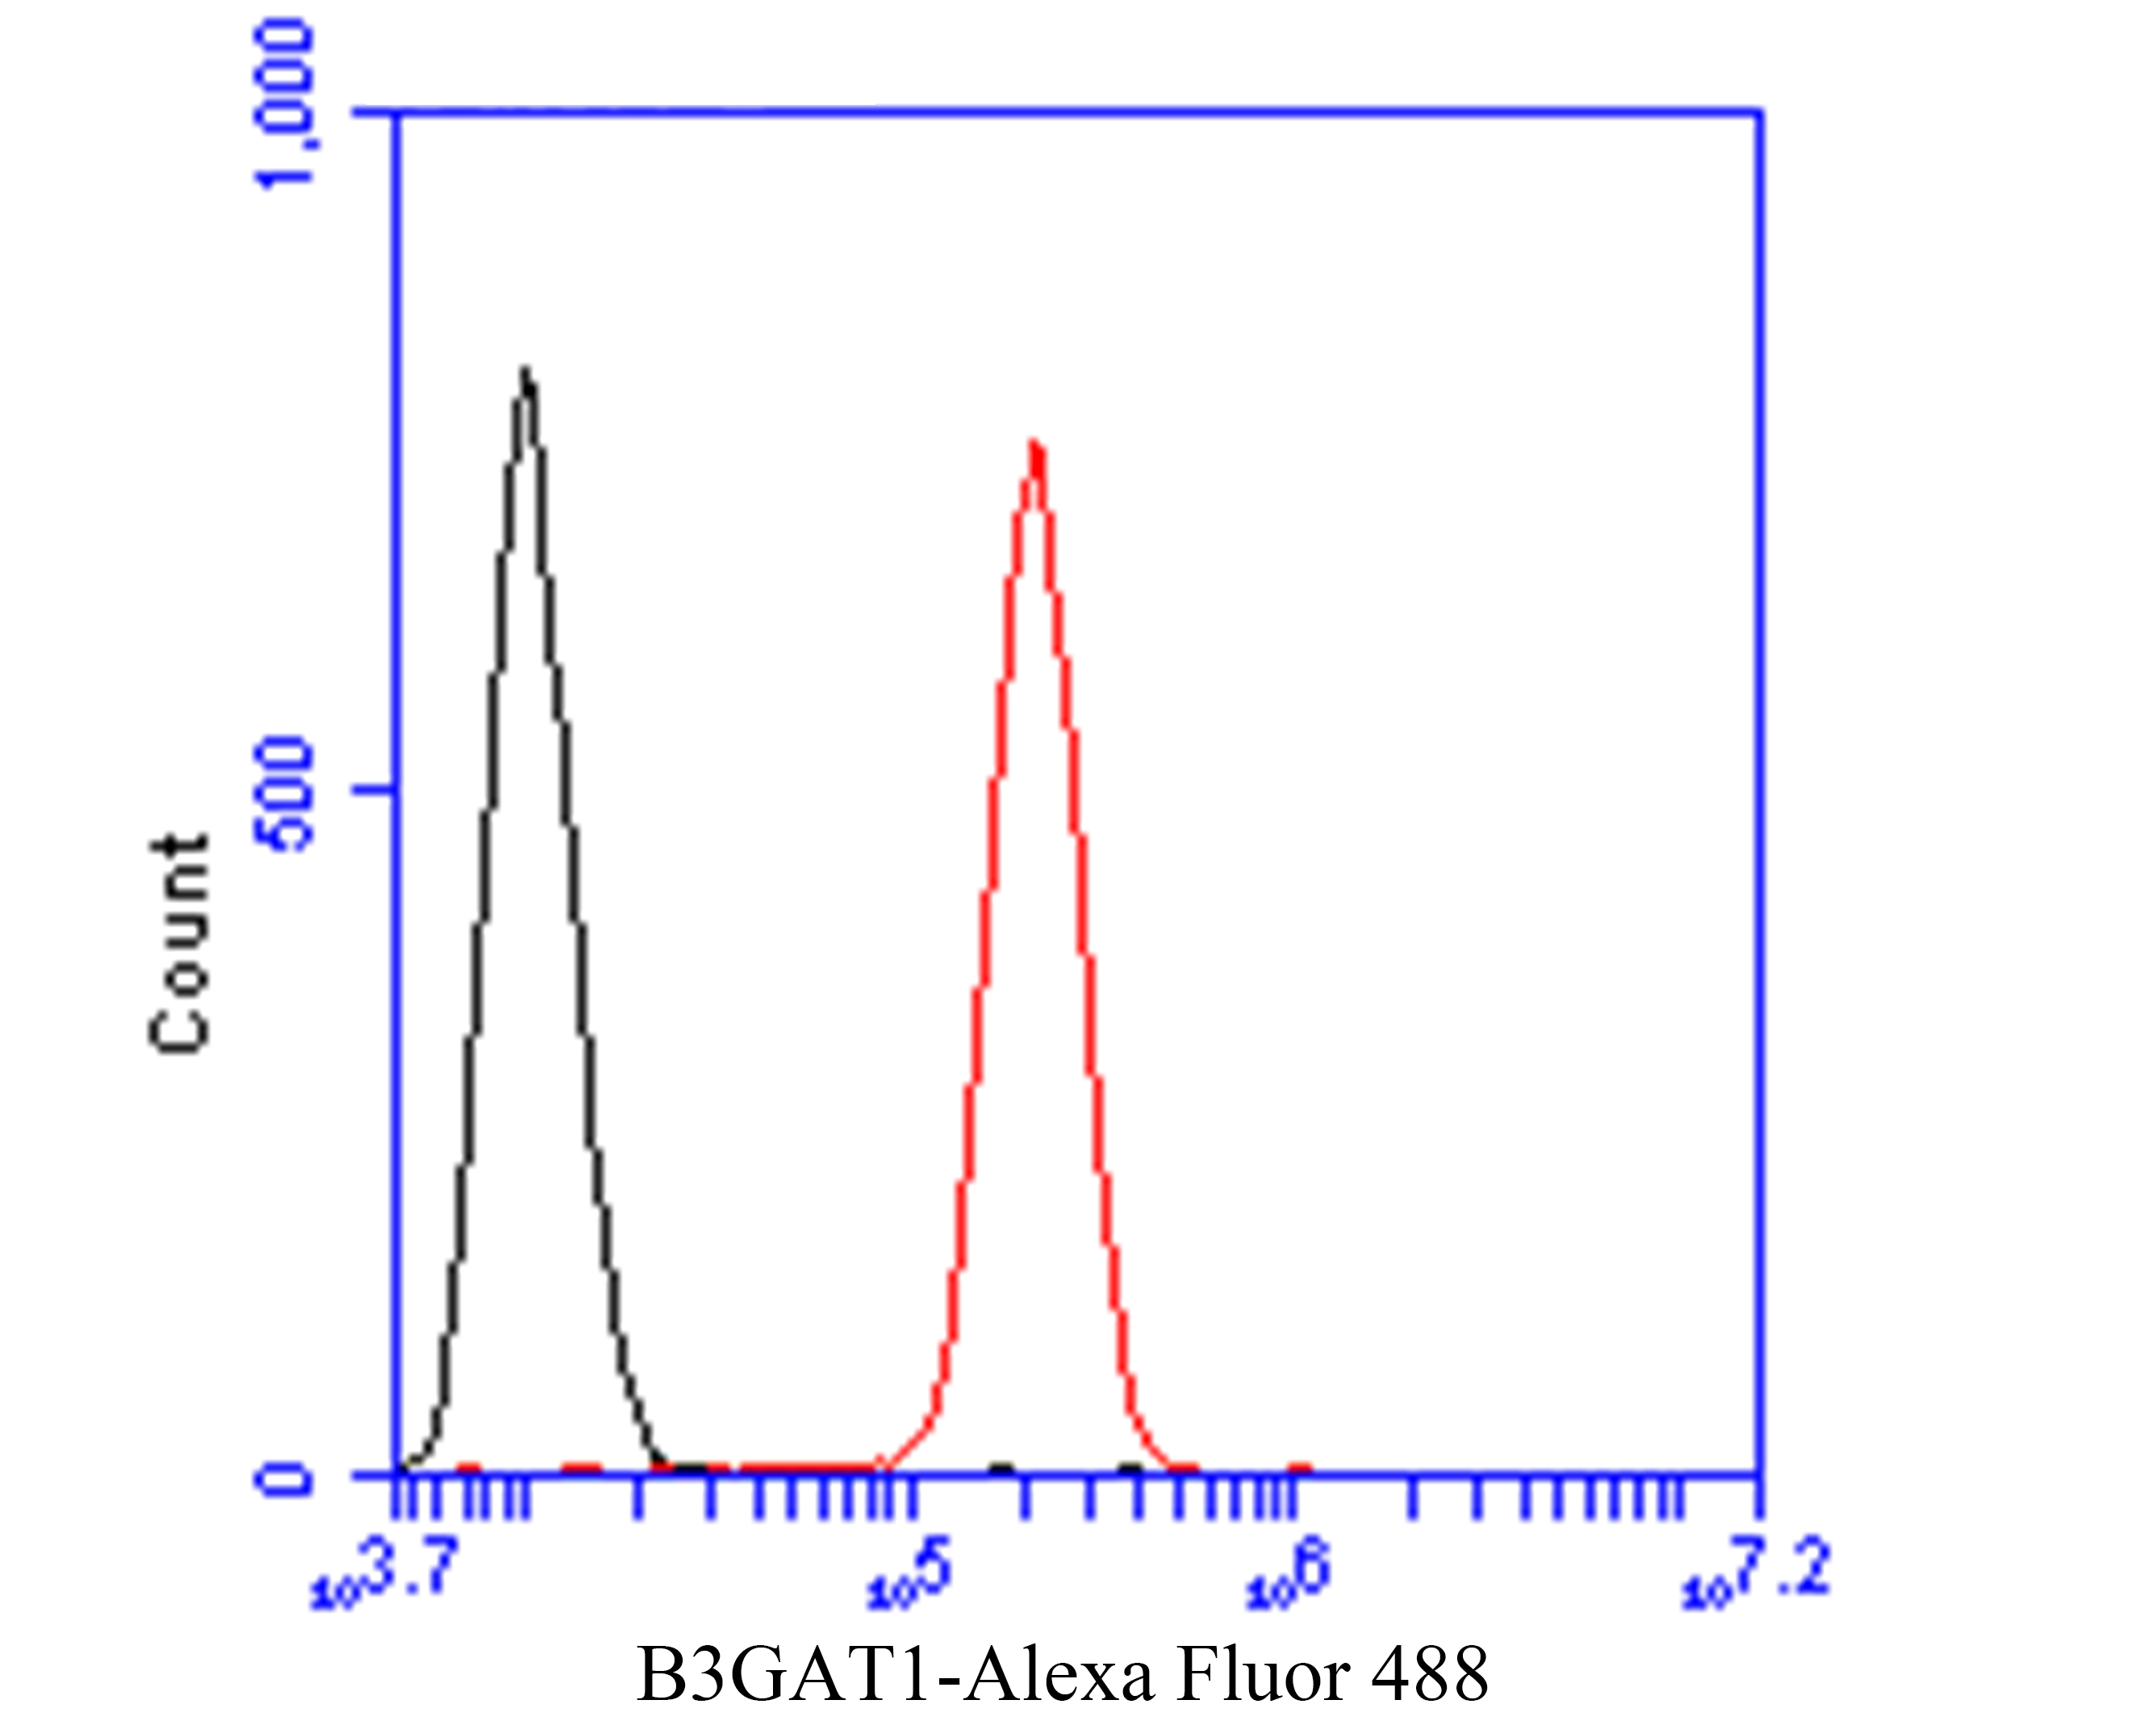 Flow cytometric analysis of B3GAT1 was done on SH-SY5Y cells. The cells were fixed, permeabilized and stained with the primary antibody (ER1901-15, 1/50) (red). After incubation of the primary antibody at room temperature for an hour, the cells were stained with a Alexa Fluor 488-conjugated Goat anti-Rabbit IgG Secondary antibody at 1/1000 dilution for 30 minutes.Unlabelled sample was used as a control (cells without incubation with primary antibody; black).